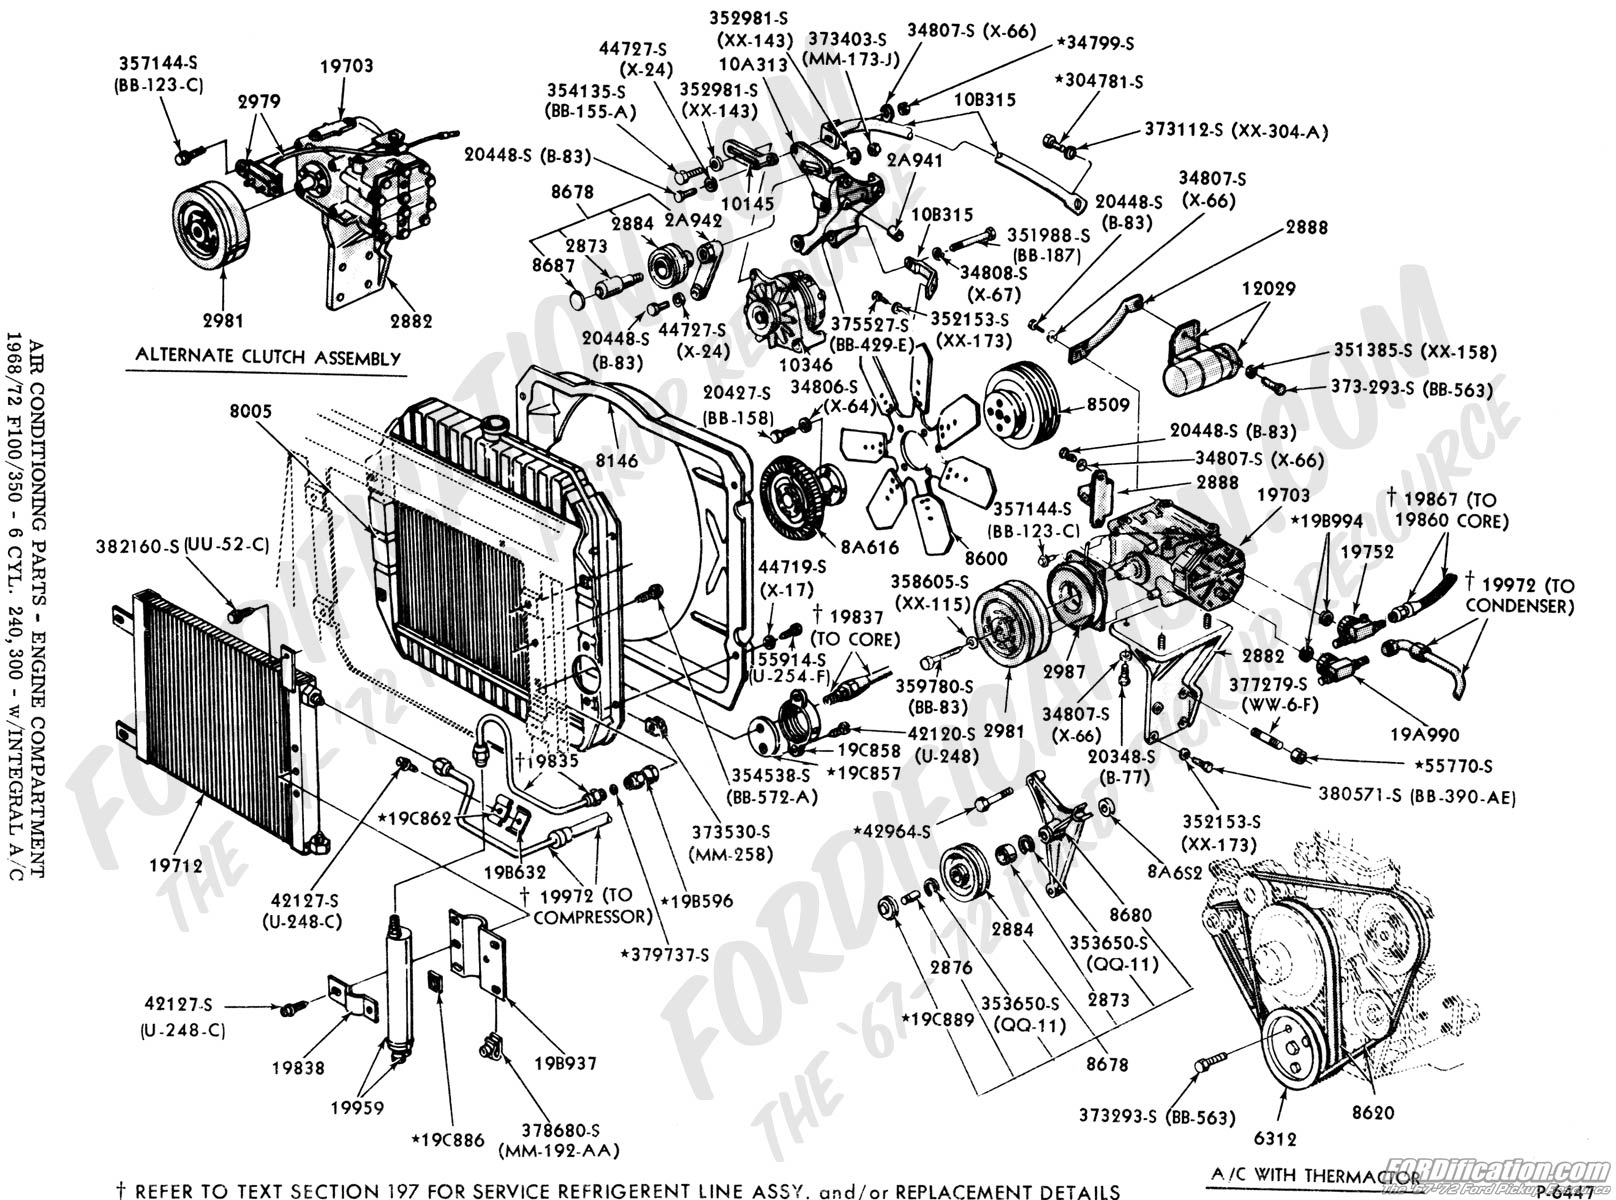 7 3 Power Stroke Engine Specs